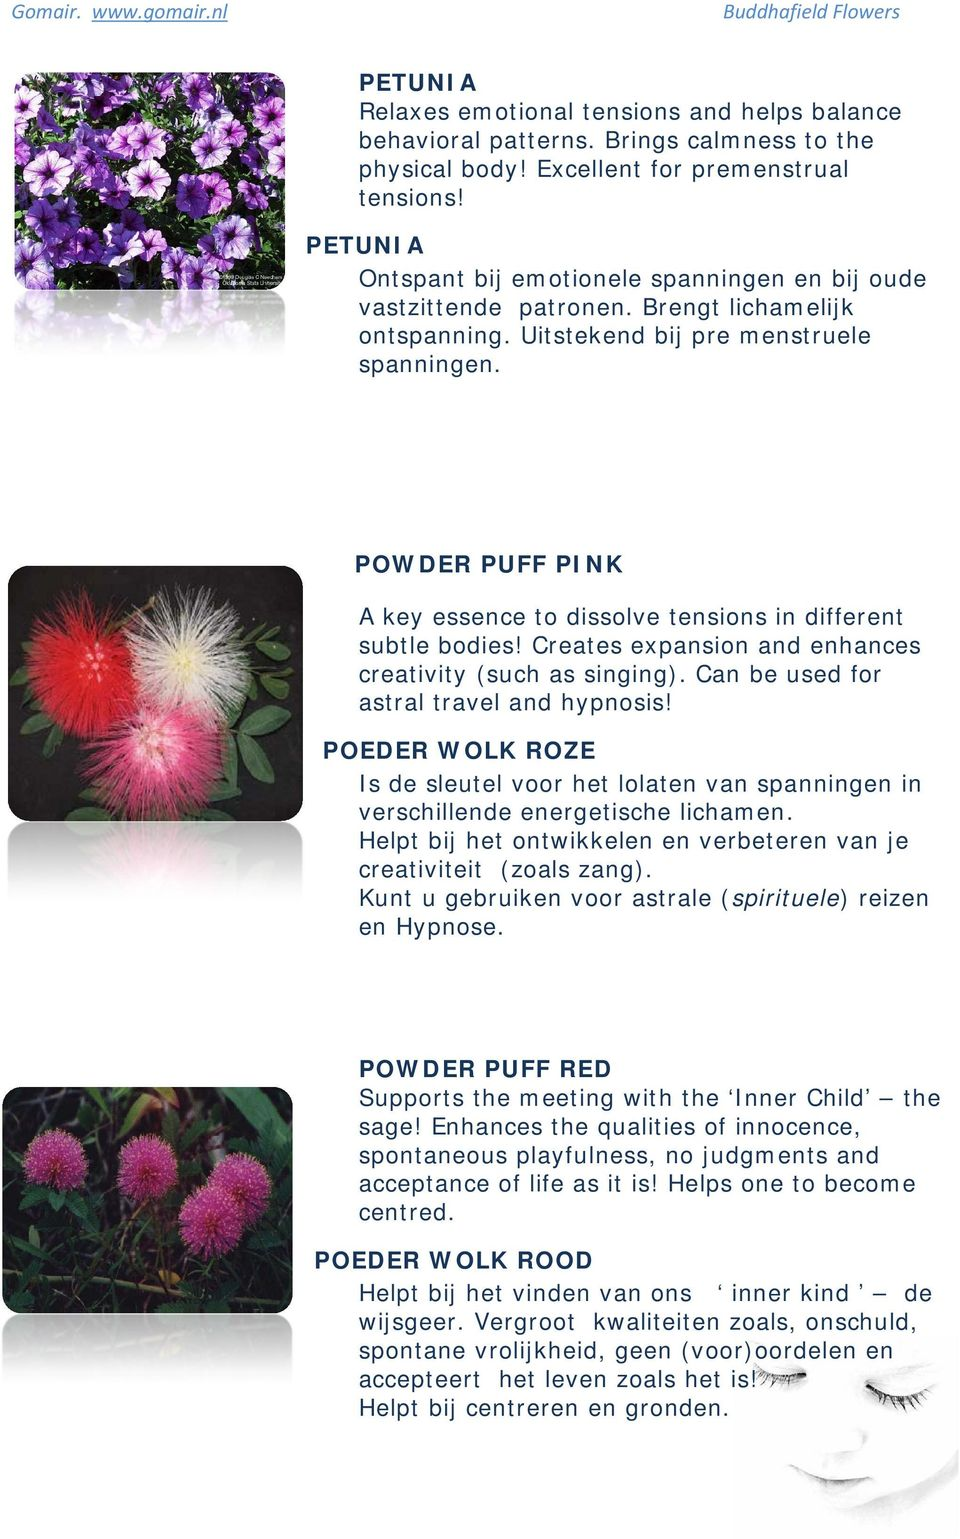 POWDER PUFF PINK A key essence to dissolve tensions in different subtle bodies! Creates expansion and enhances creativity (such as singing). Can be used for astral travel and hypnosis!